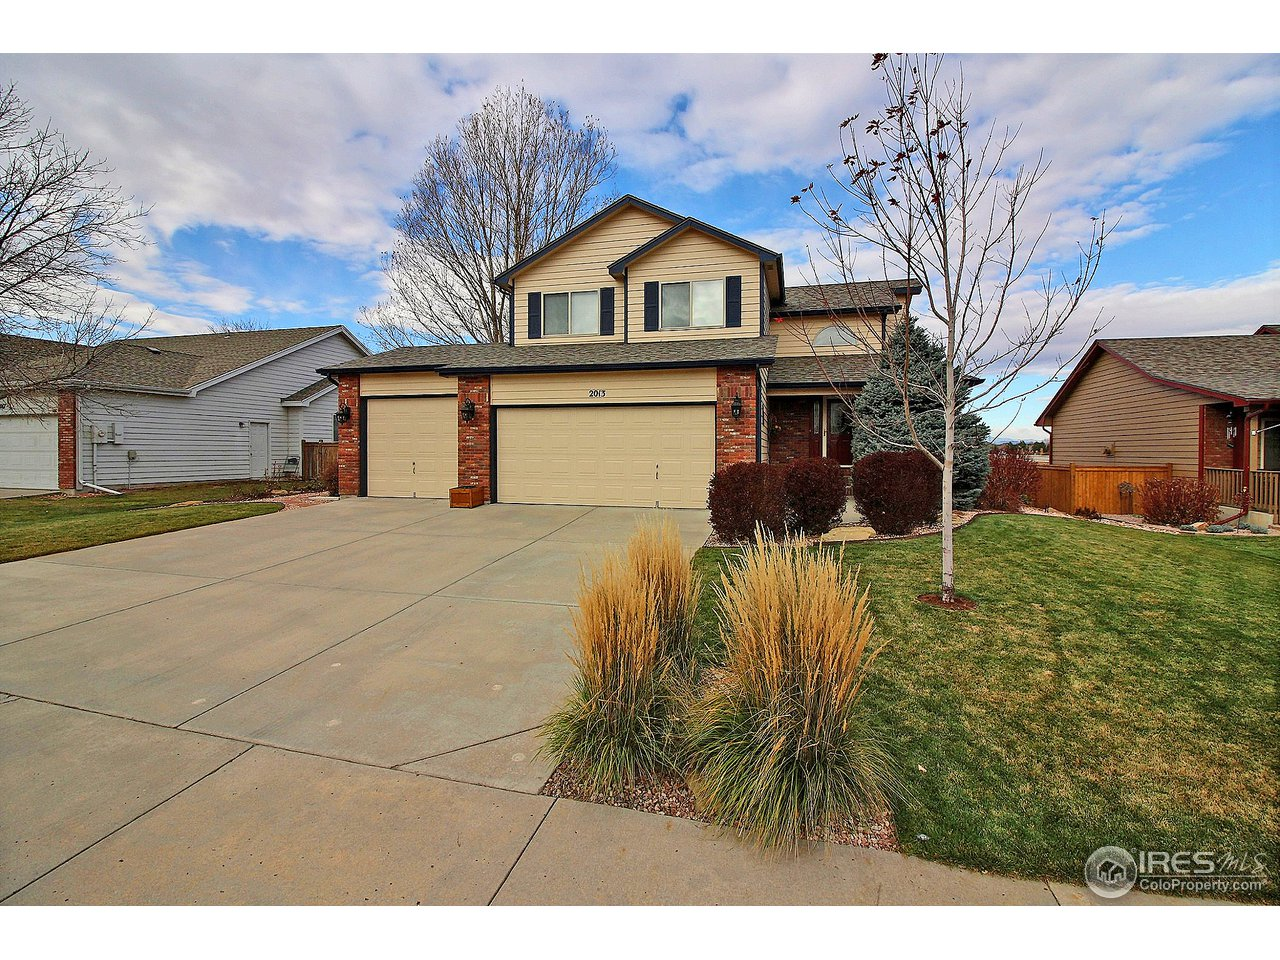 Well maintained home that backs up to open space with views of the mountains! The original owners have taken a pride of ownership in this house and it shows. This 3 bedroom, 3 bathroom is everything you need.  There is also room to expand in the large unfinished basement! The HOA fee includes access to the subdivision pool, which is great for the hot Colorado summers. Come take a look at this great house today!